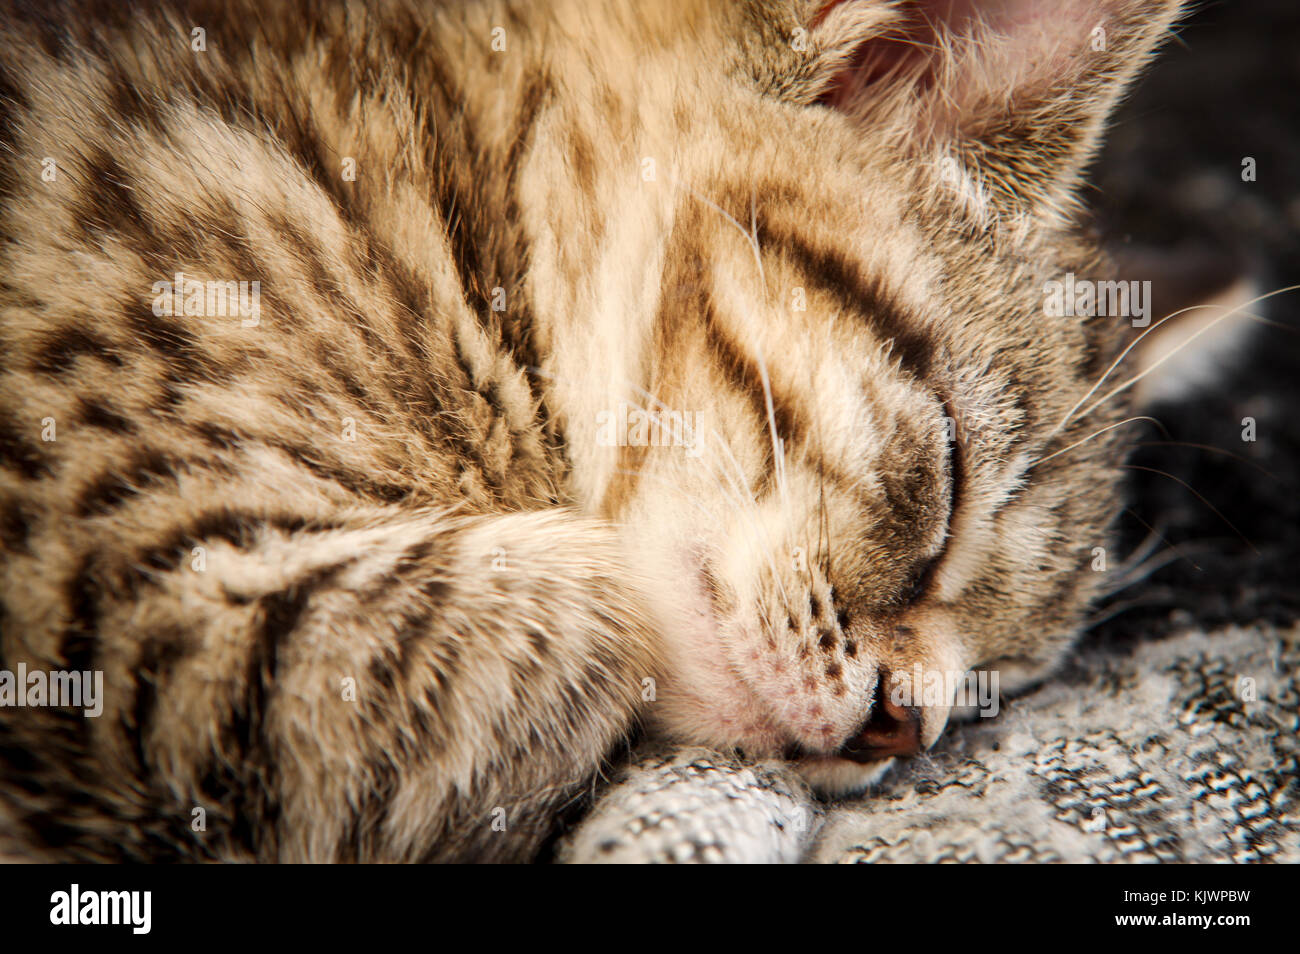 Adorable tabby rescue kitten fast asleep in her new home - Stock Image